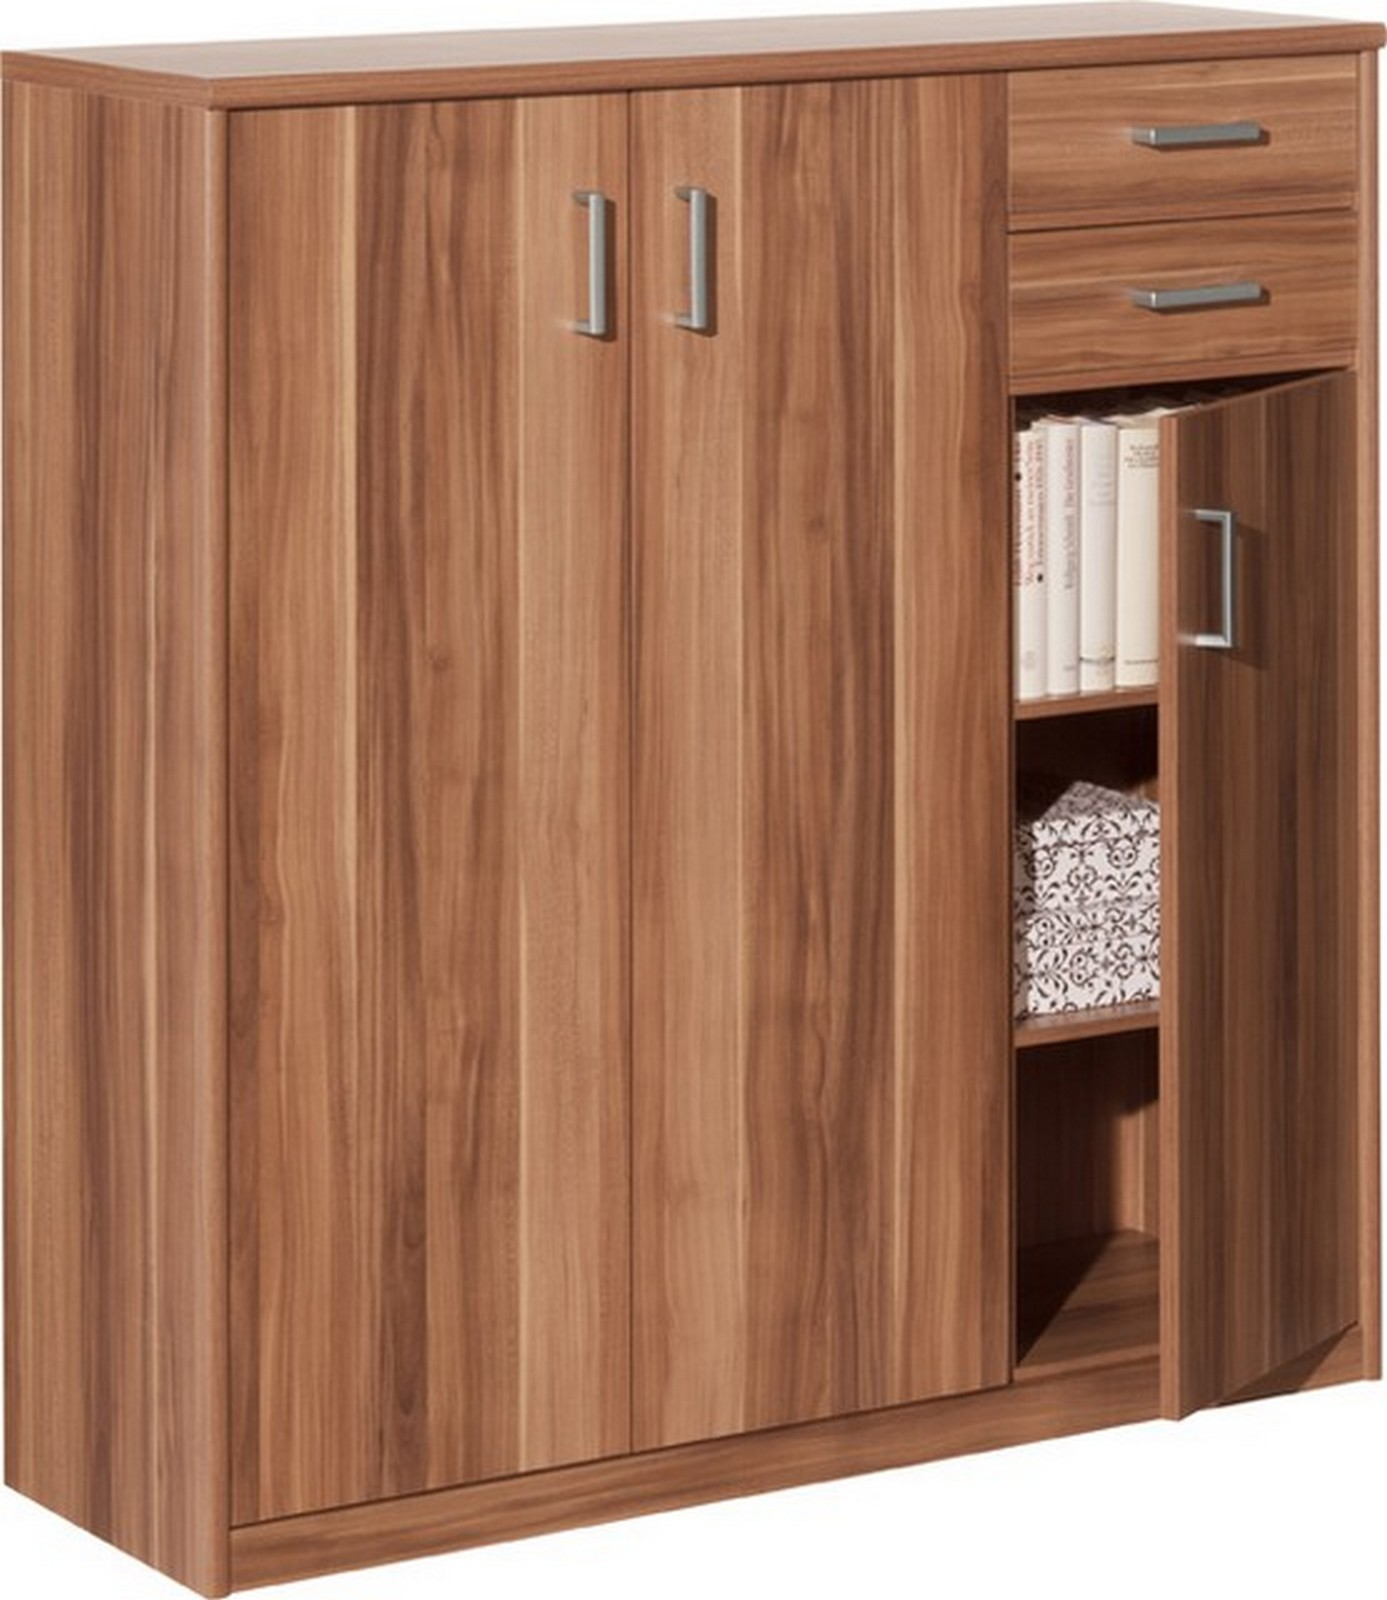 Kommode soft plus nussbaum highboard ebay for Kommode nussbaum nachbildung